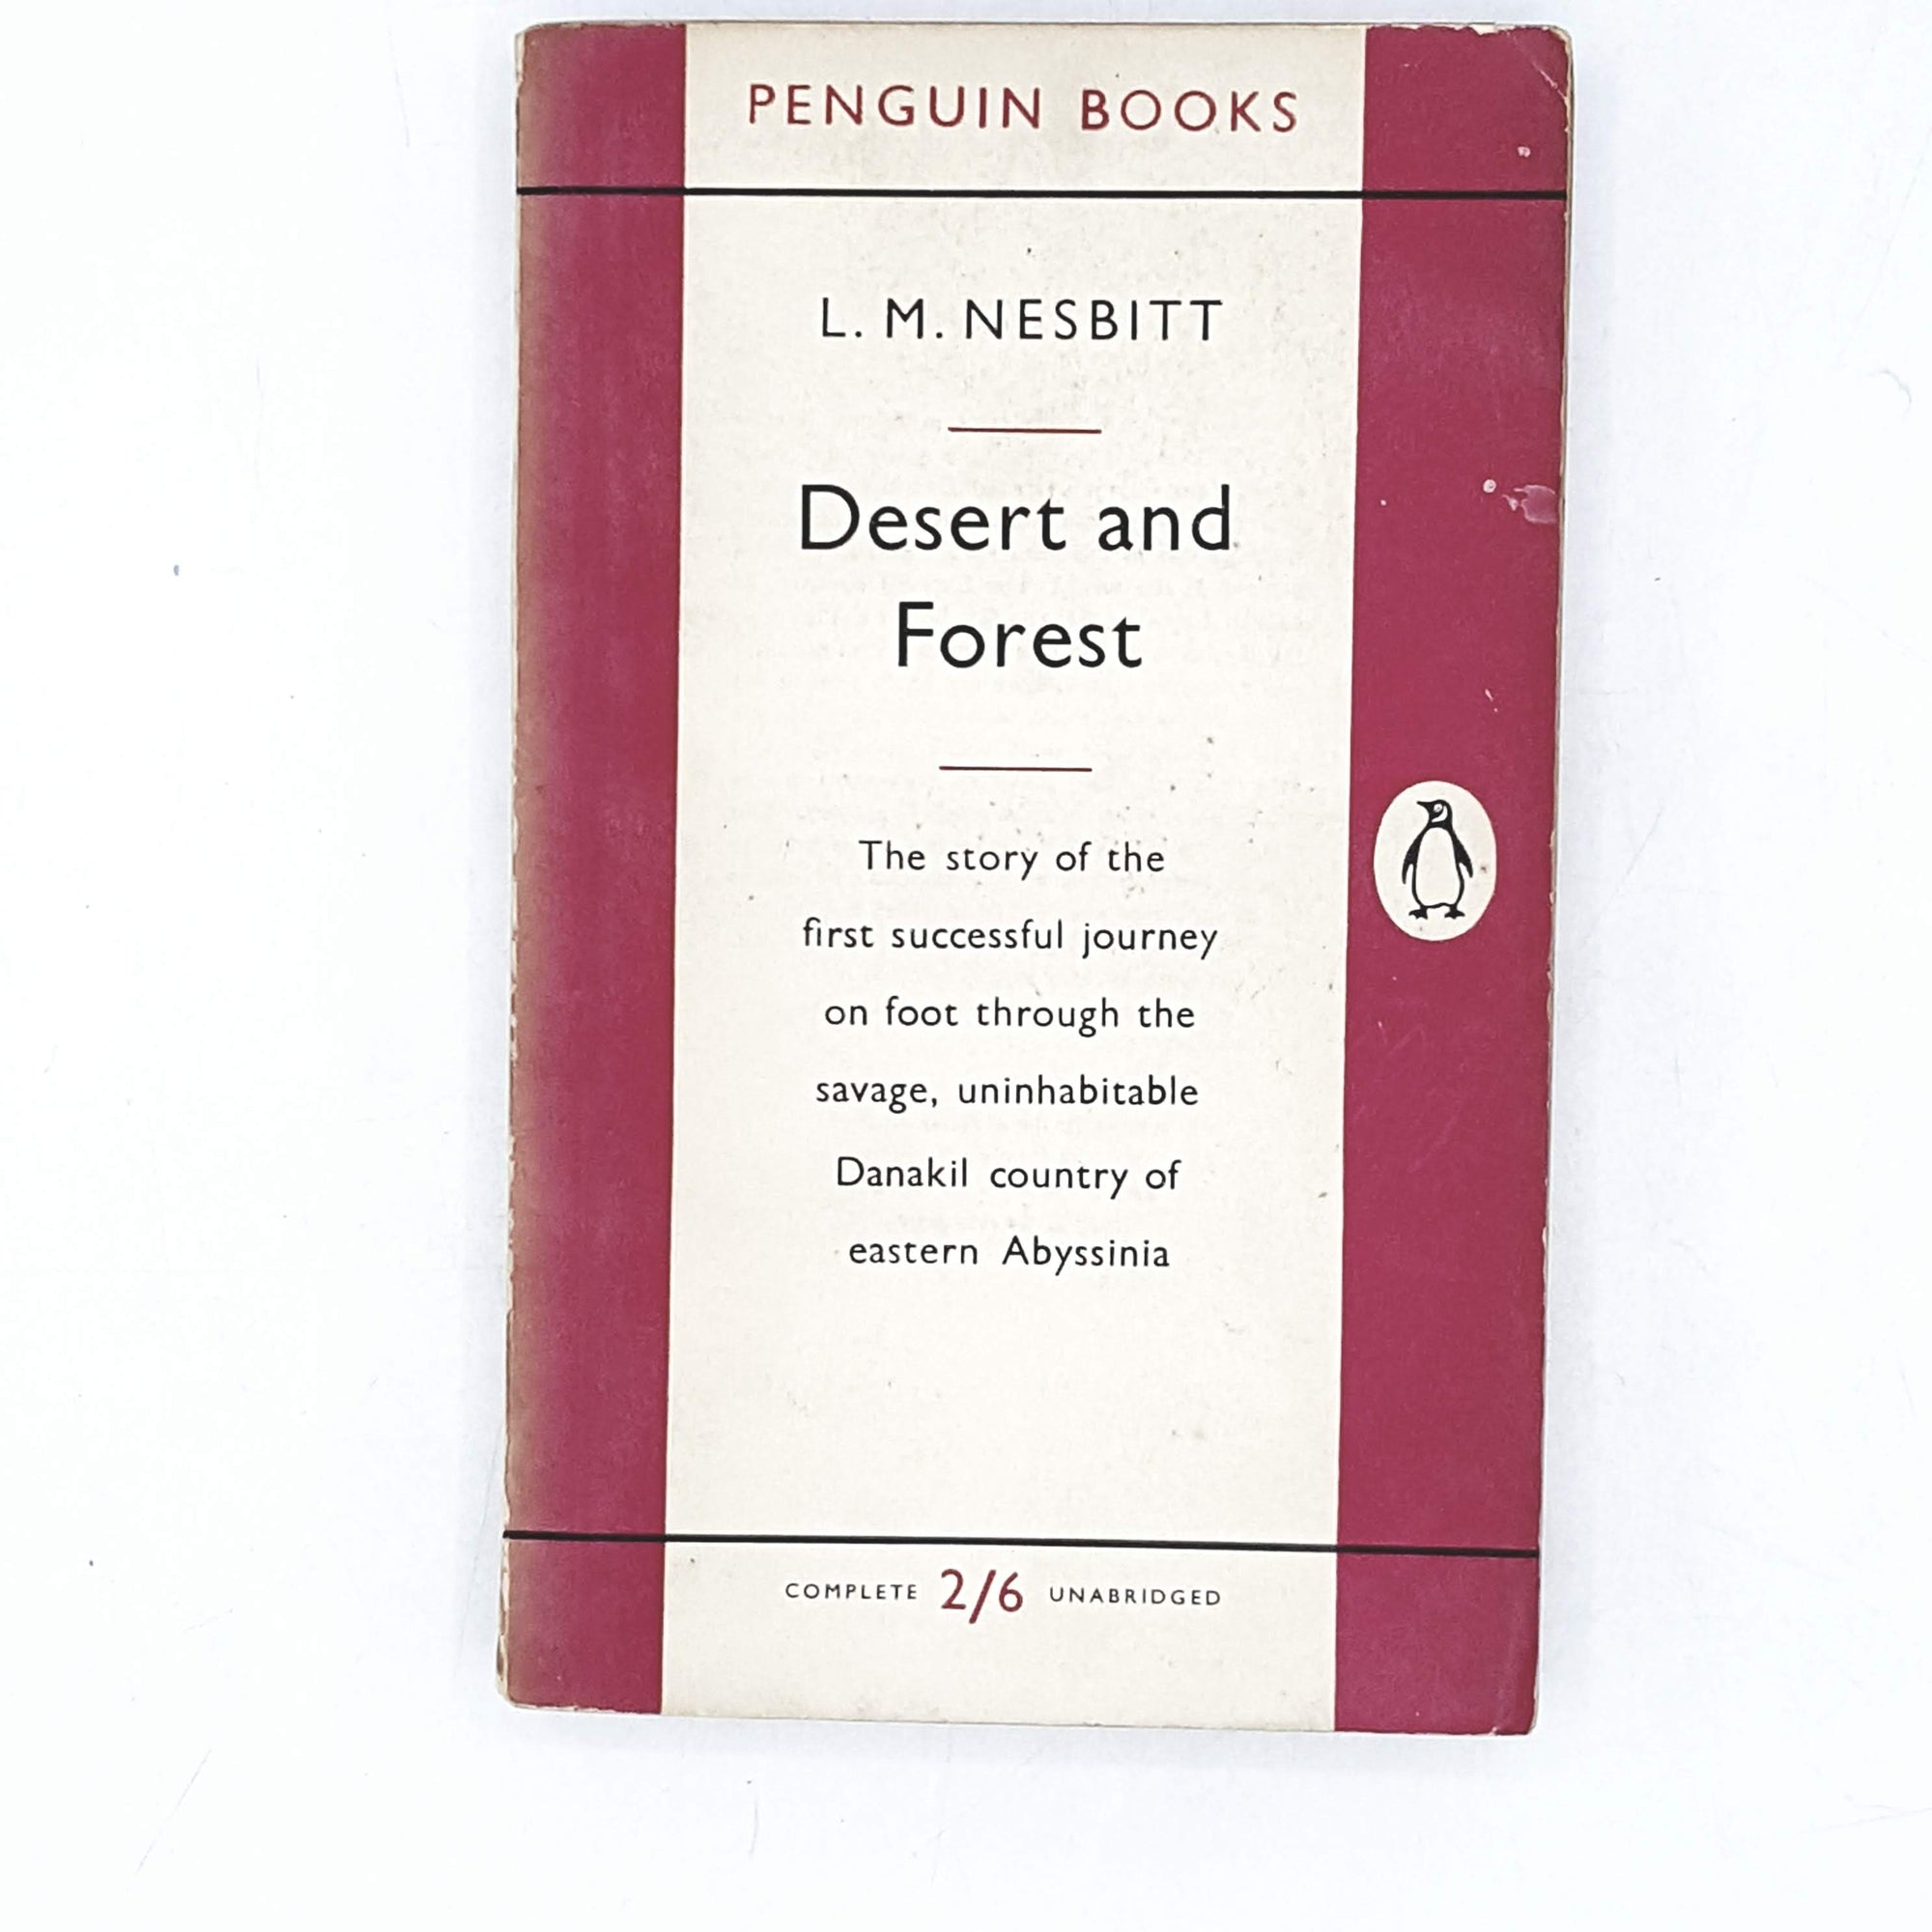 Vintage Penguin Desert and Forest by L. M. Nesbitt 1955